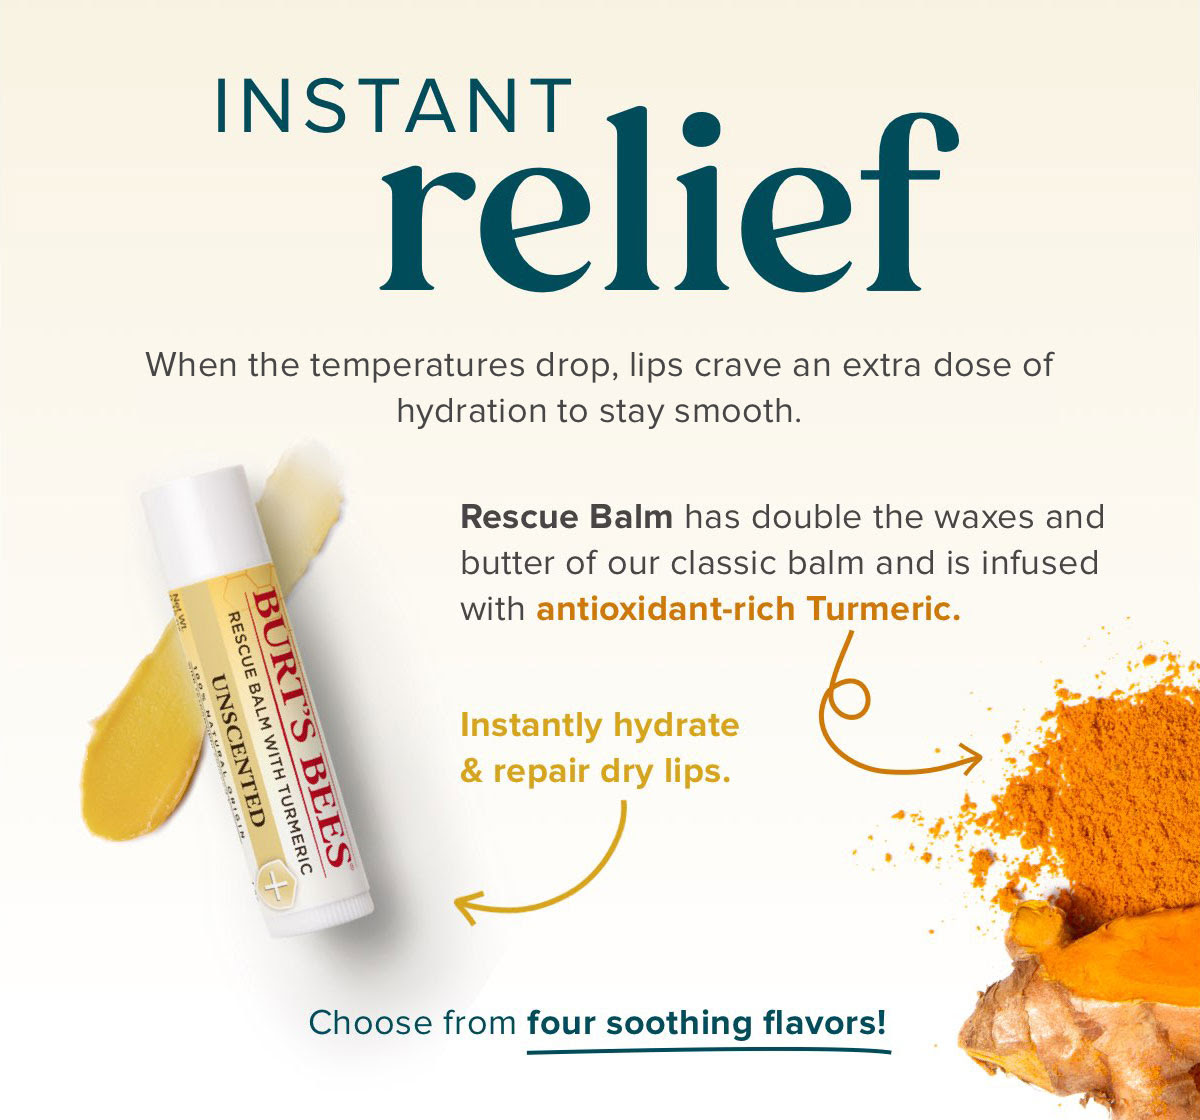 Rescue Balm for instant relief